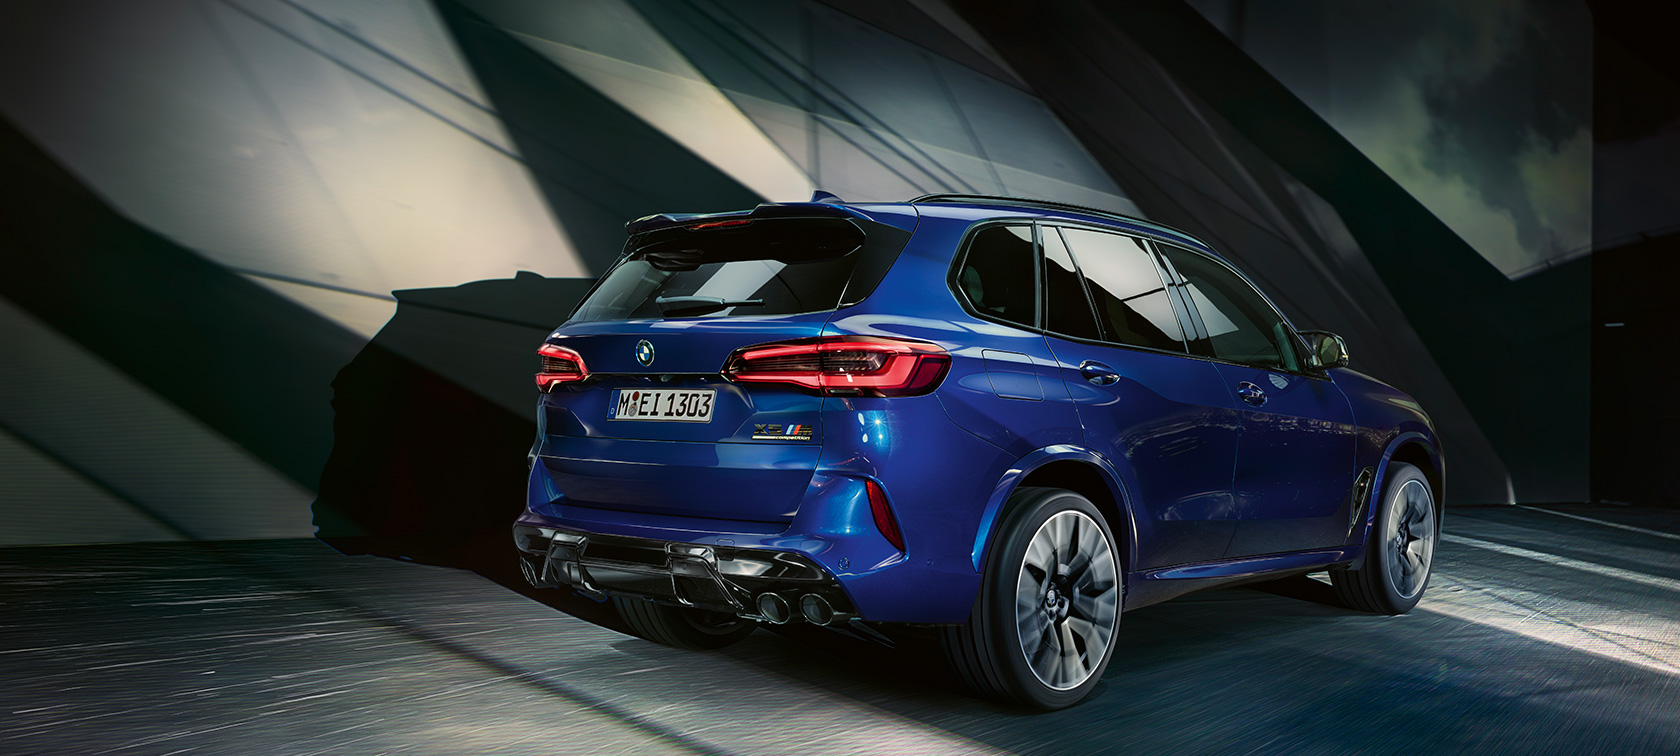 BMW X5 M Competition F95 2020 Marina Bay Blue metallizzato, vista posteriore a tre quarti